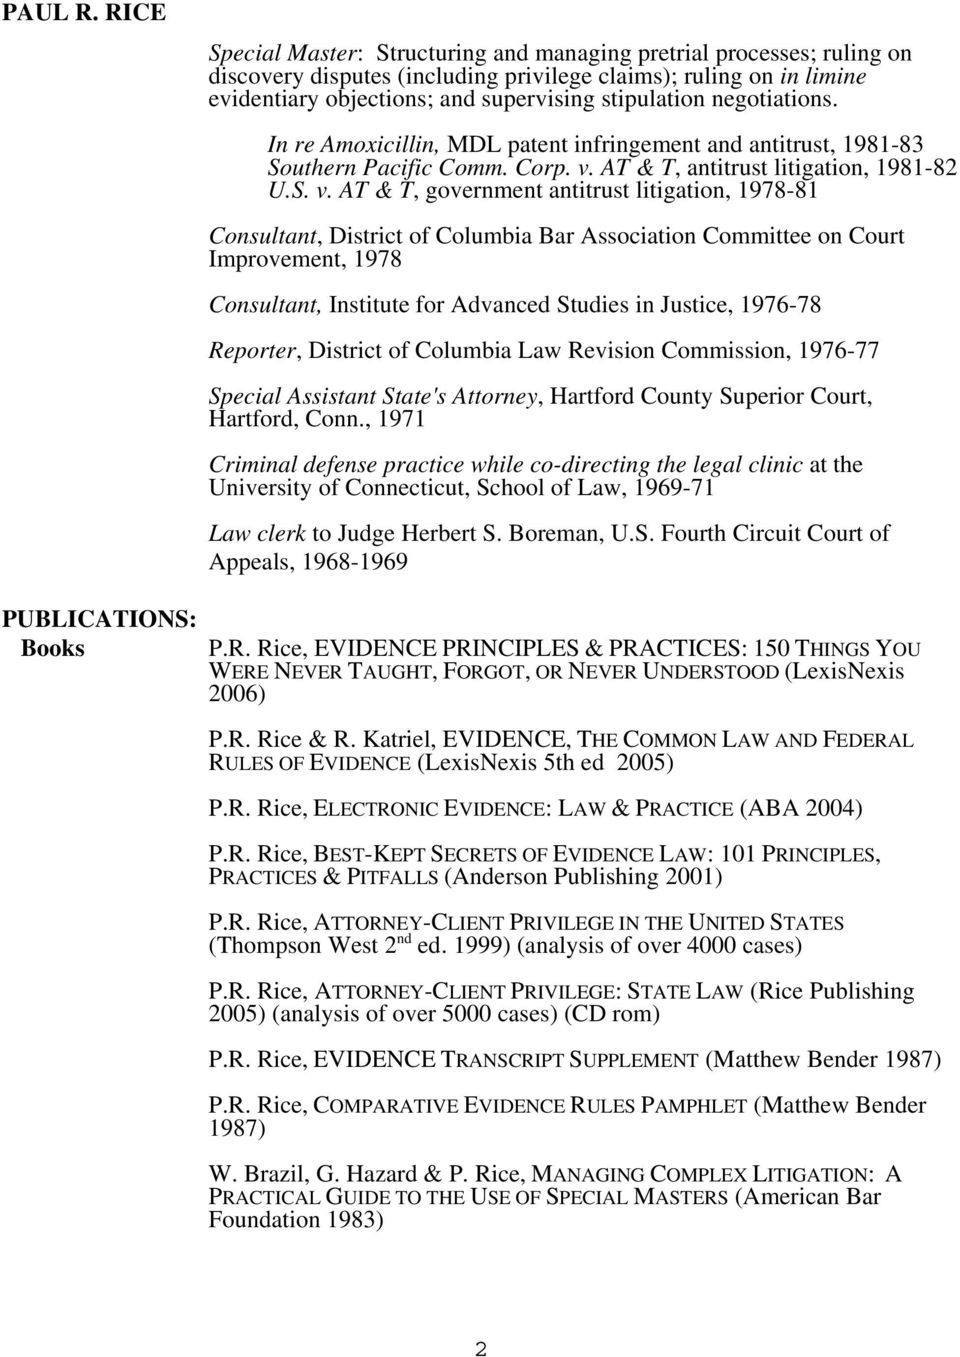 AT & T, antitrust litigation, 1981-82 U.S. v.